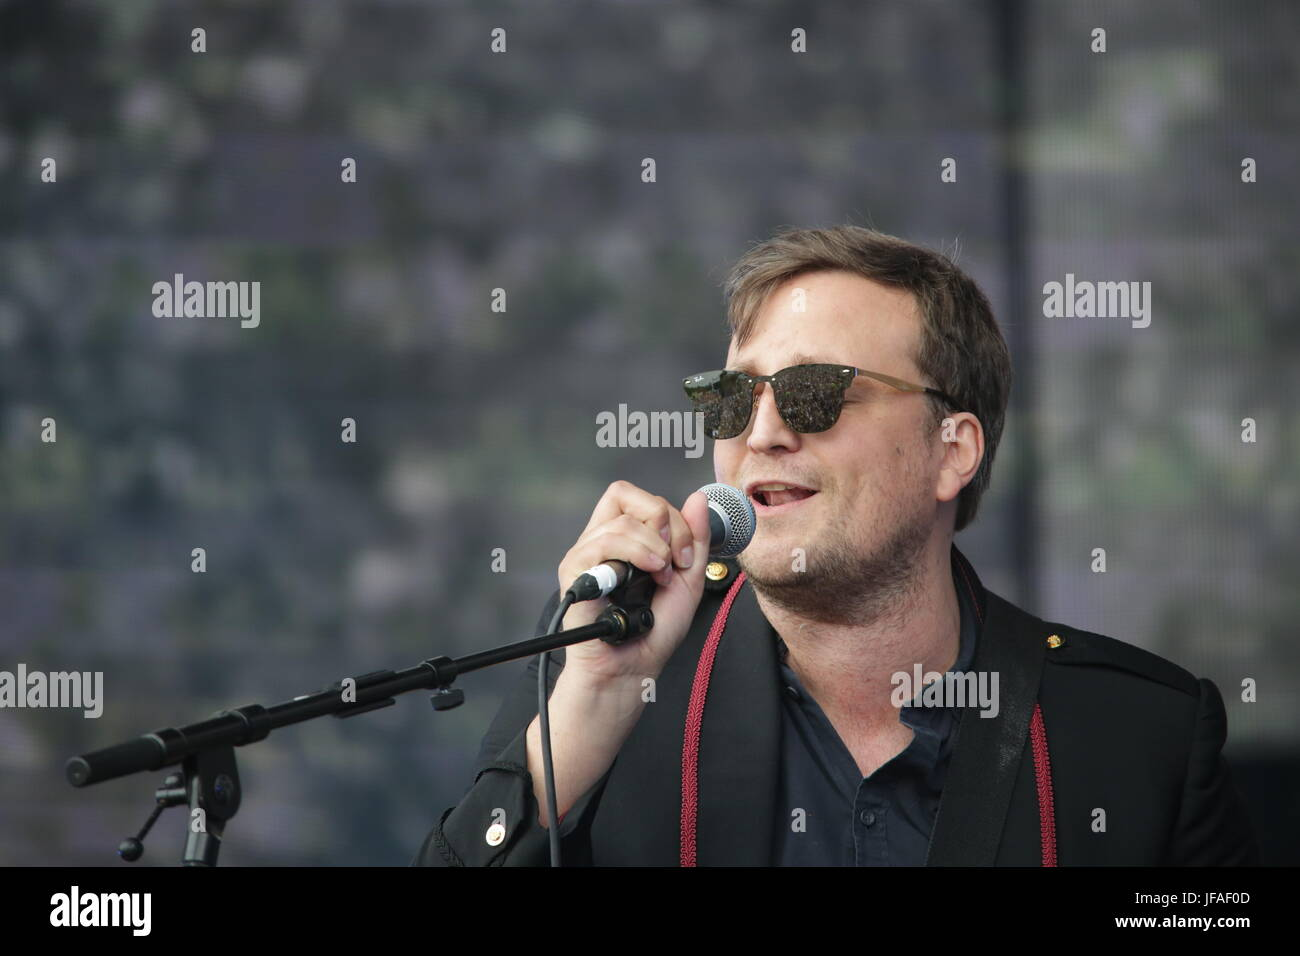 London, UK. 30th June, 2017. James Walsh of Starsailor performing live on the Great Oak stage as part of the 2017 - Stock Image